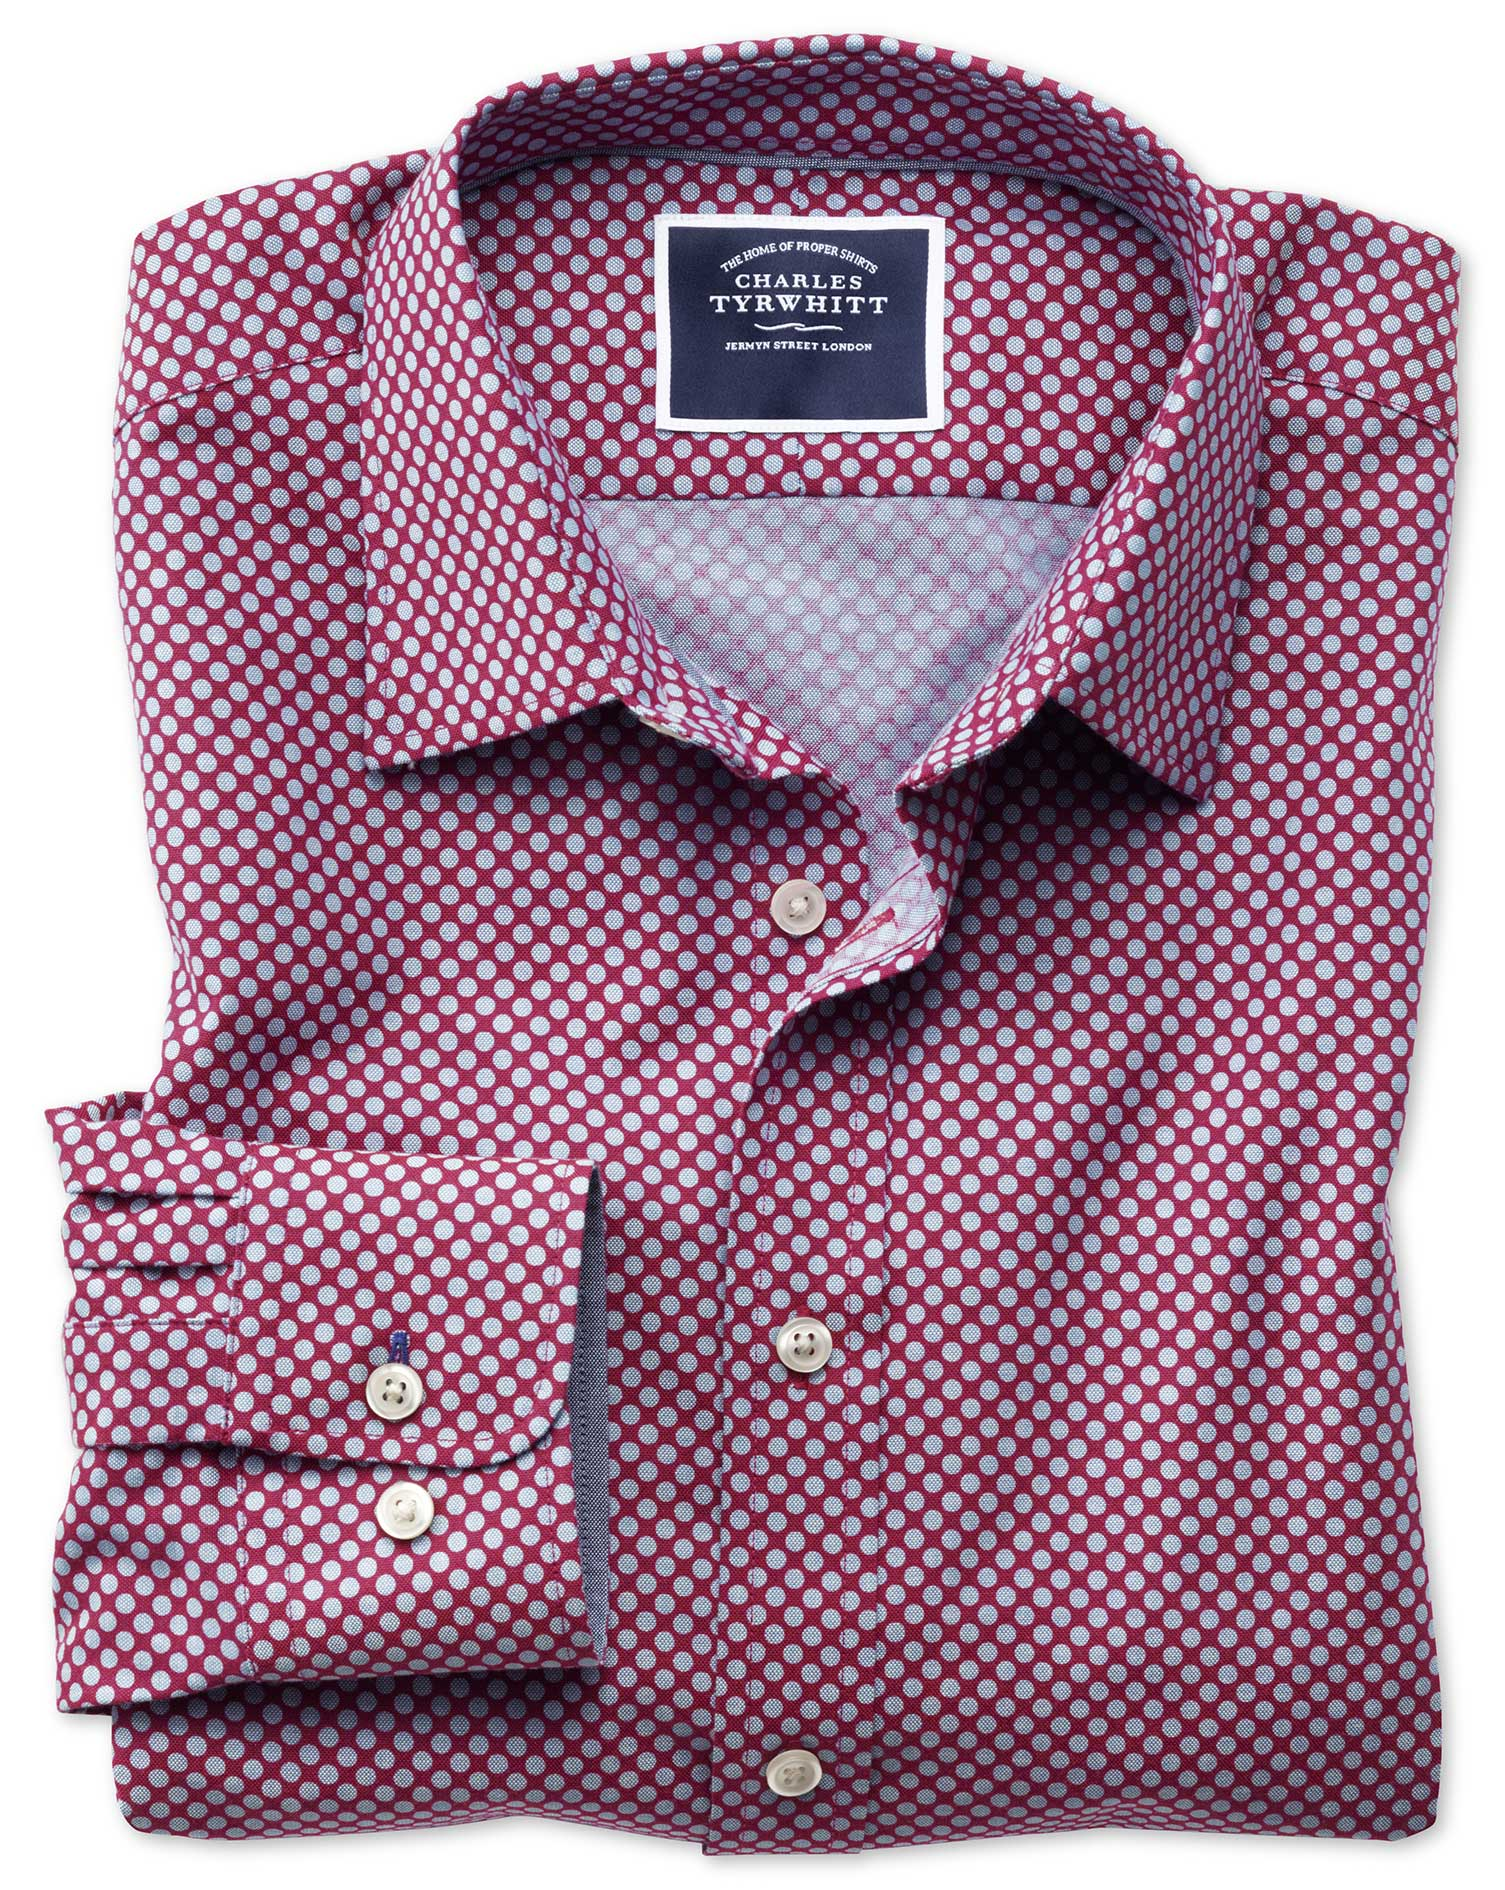 Slim Fit Non-Iron Chambray Berry Spot Print Cotton Shirt Single Cuff Size XS by Charles Tyrwhitt